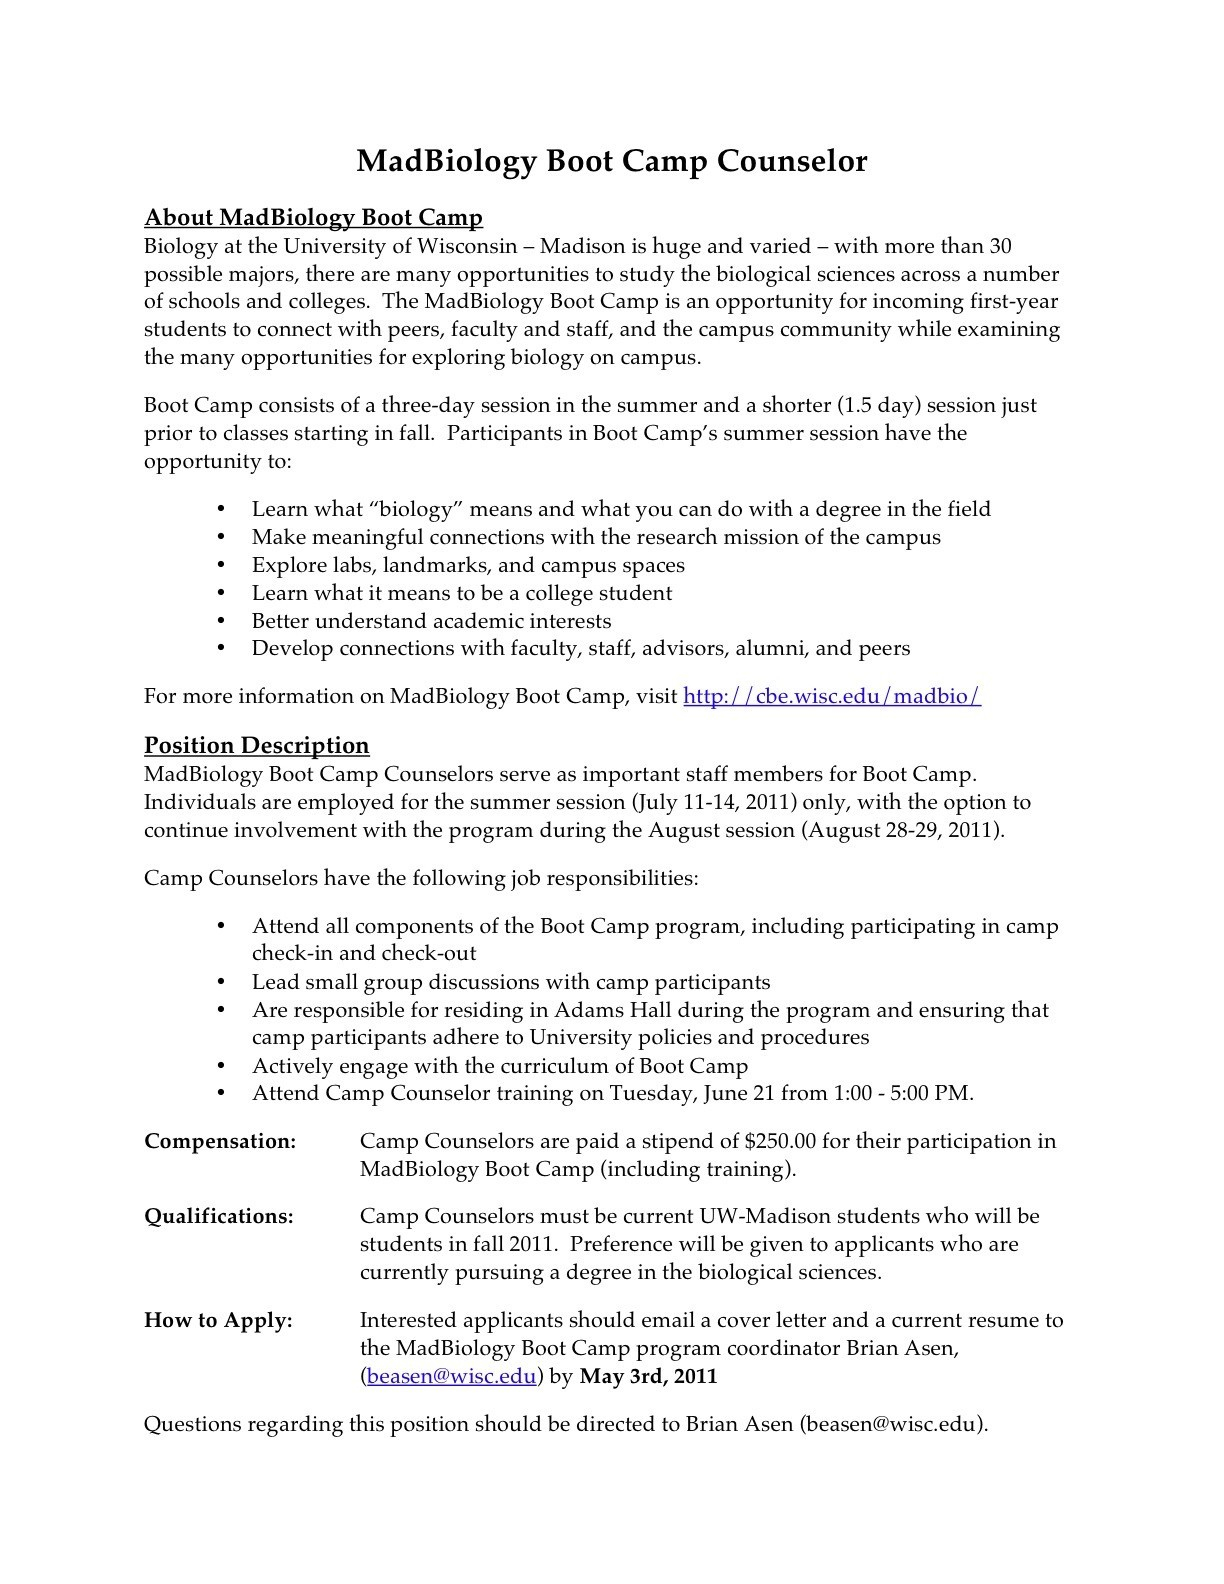 School Counselor Resume Template - Camp Counselor Resume Inspirational Resume Examples for Youth